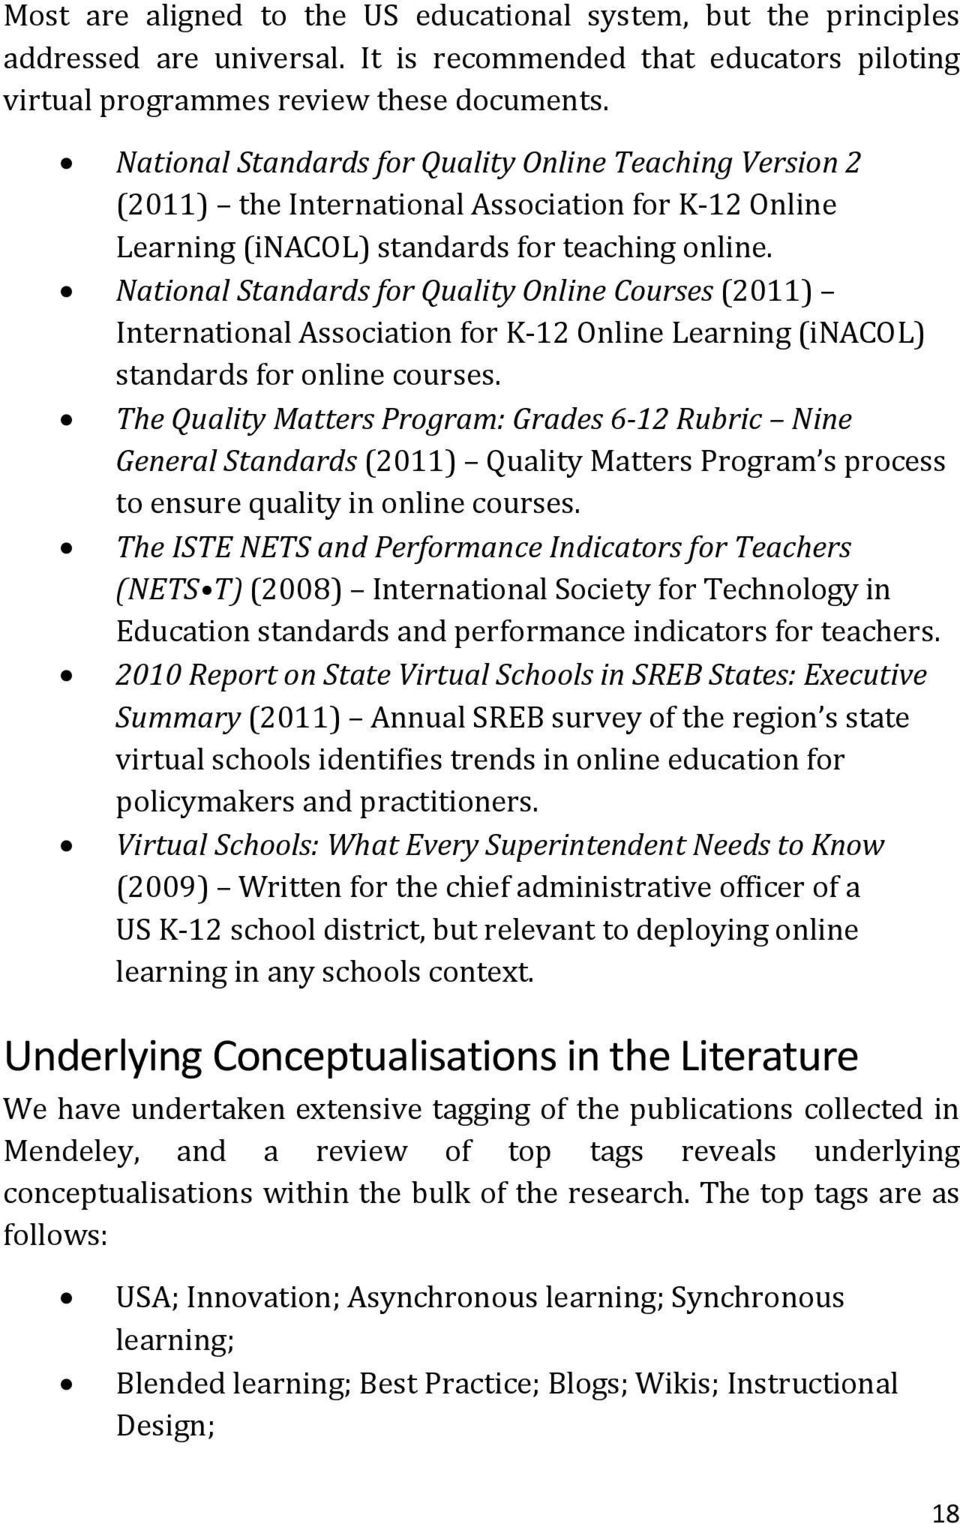 National Standards for Quality Online Courses (2011) International Association for K-12 Online Learning (inacol) standards for online courses.